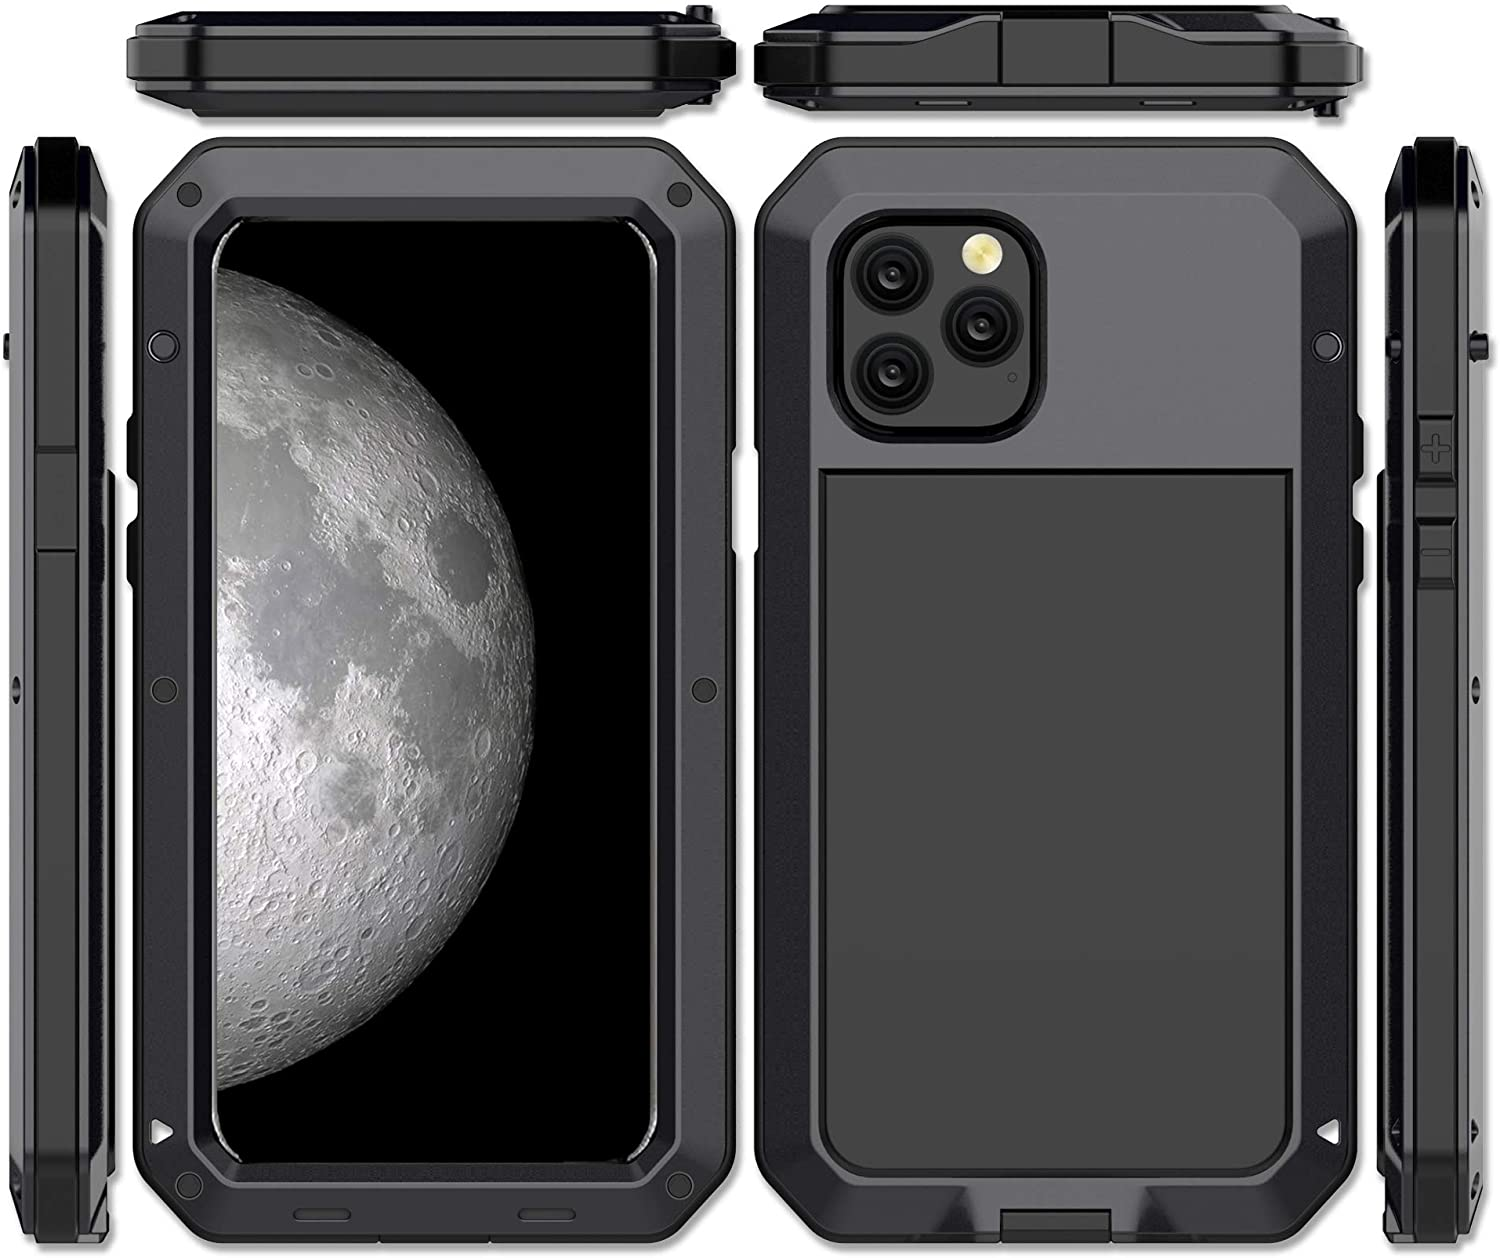 CarterLily iPhone 11 Case, Full Body Shockproof Dustproof Waterproof Aluminum Alloy Metal Gorilla Glass Cover Case for Apple iPhone 11 6.1 inch (Black)